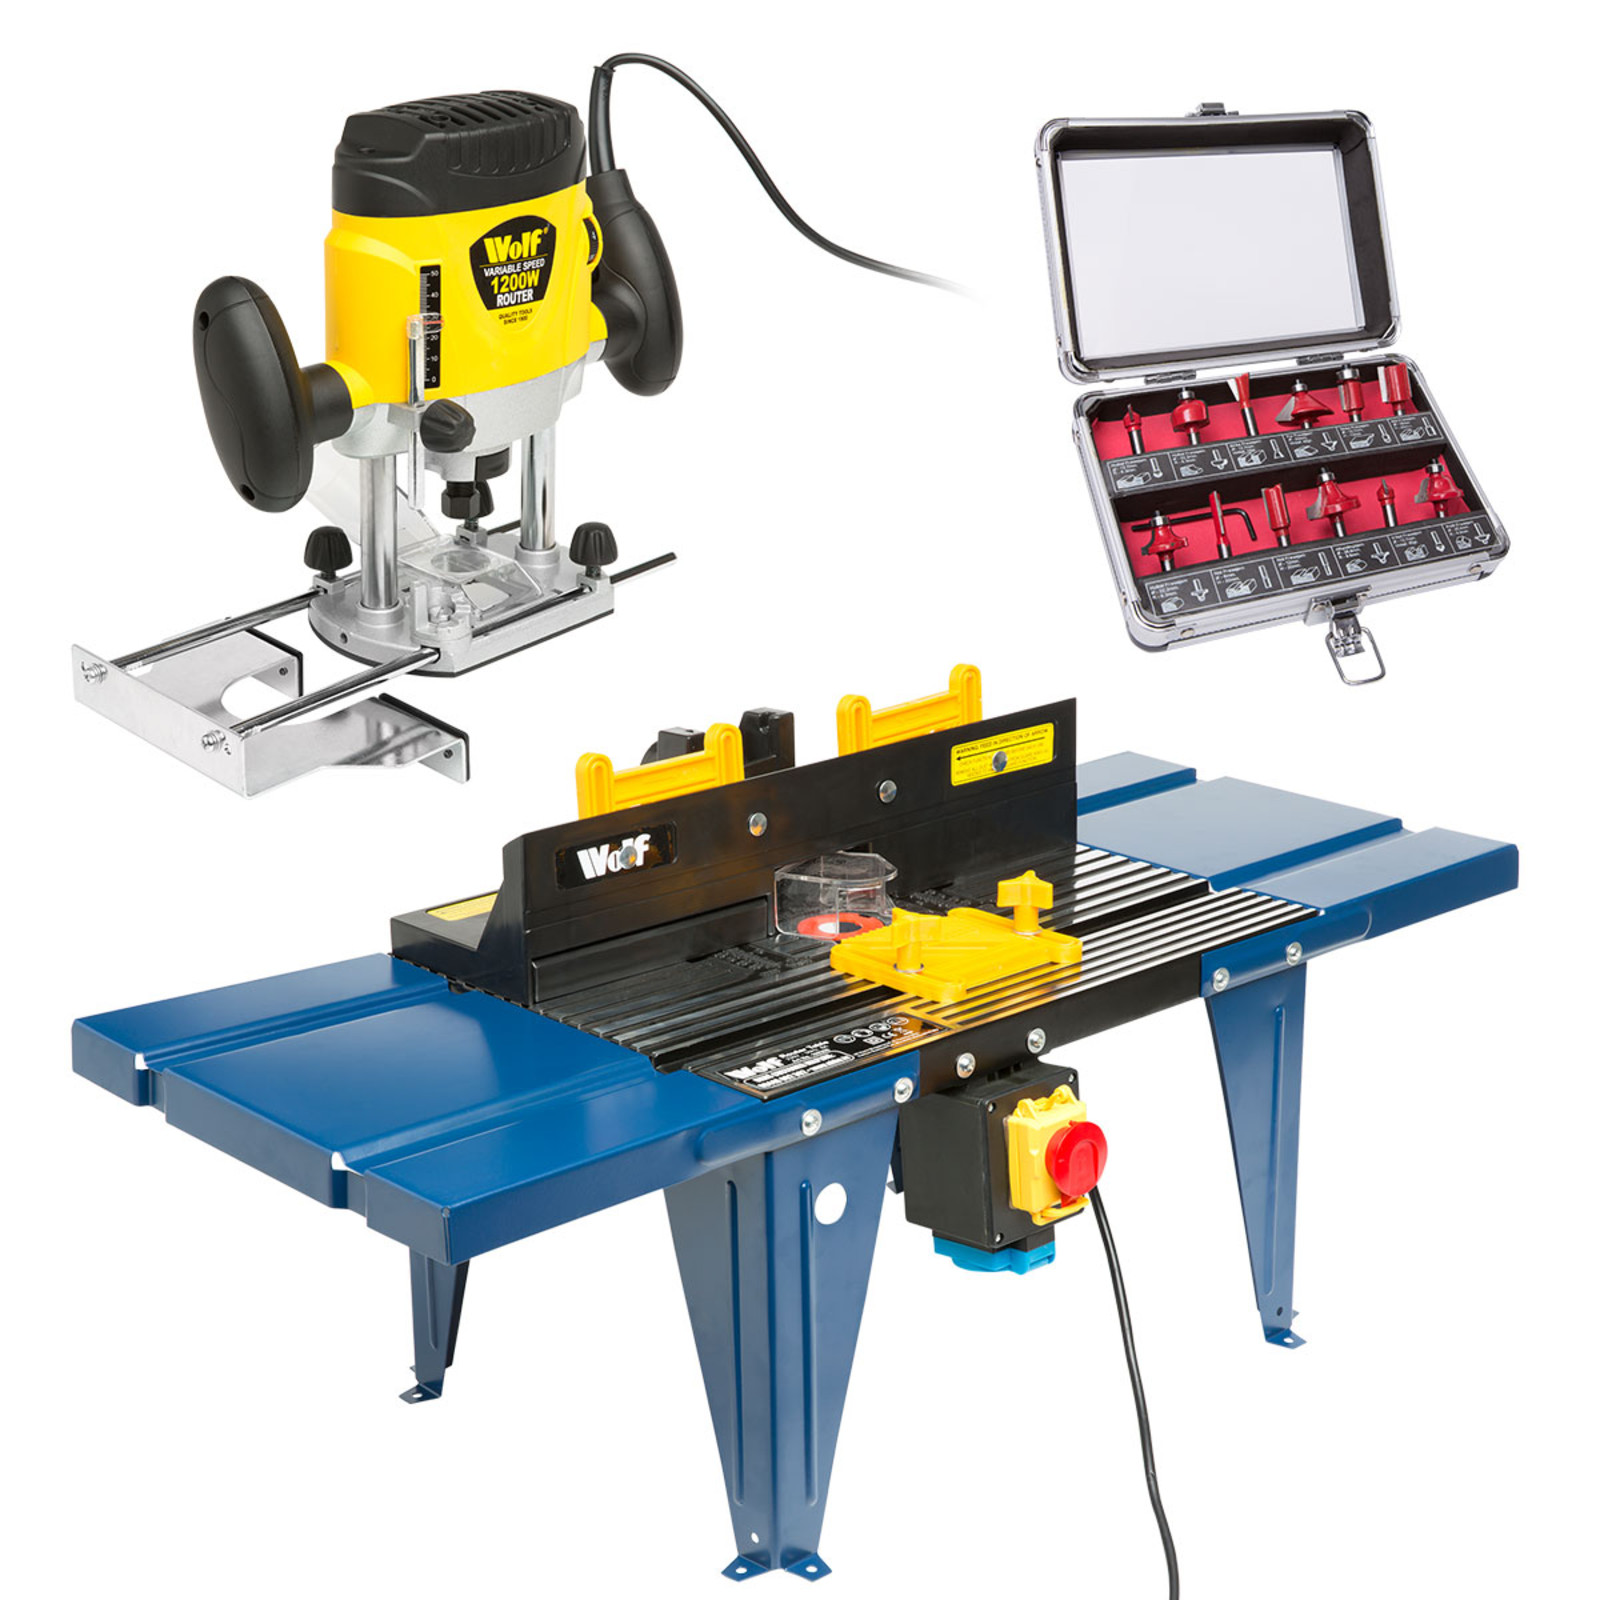 Wolf 1200w plunge router router table wolf 12pc bit kit ukhs click on the image to enlarge keyboard keysfo Image collections